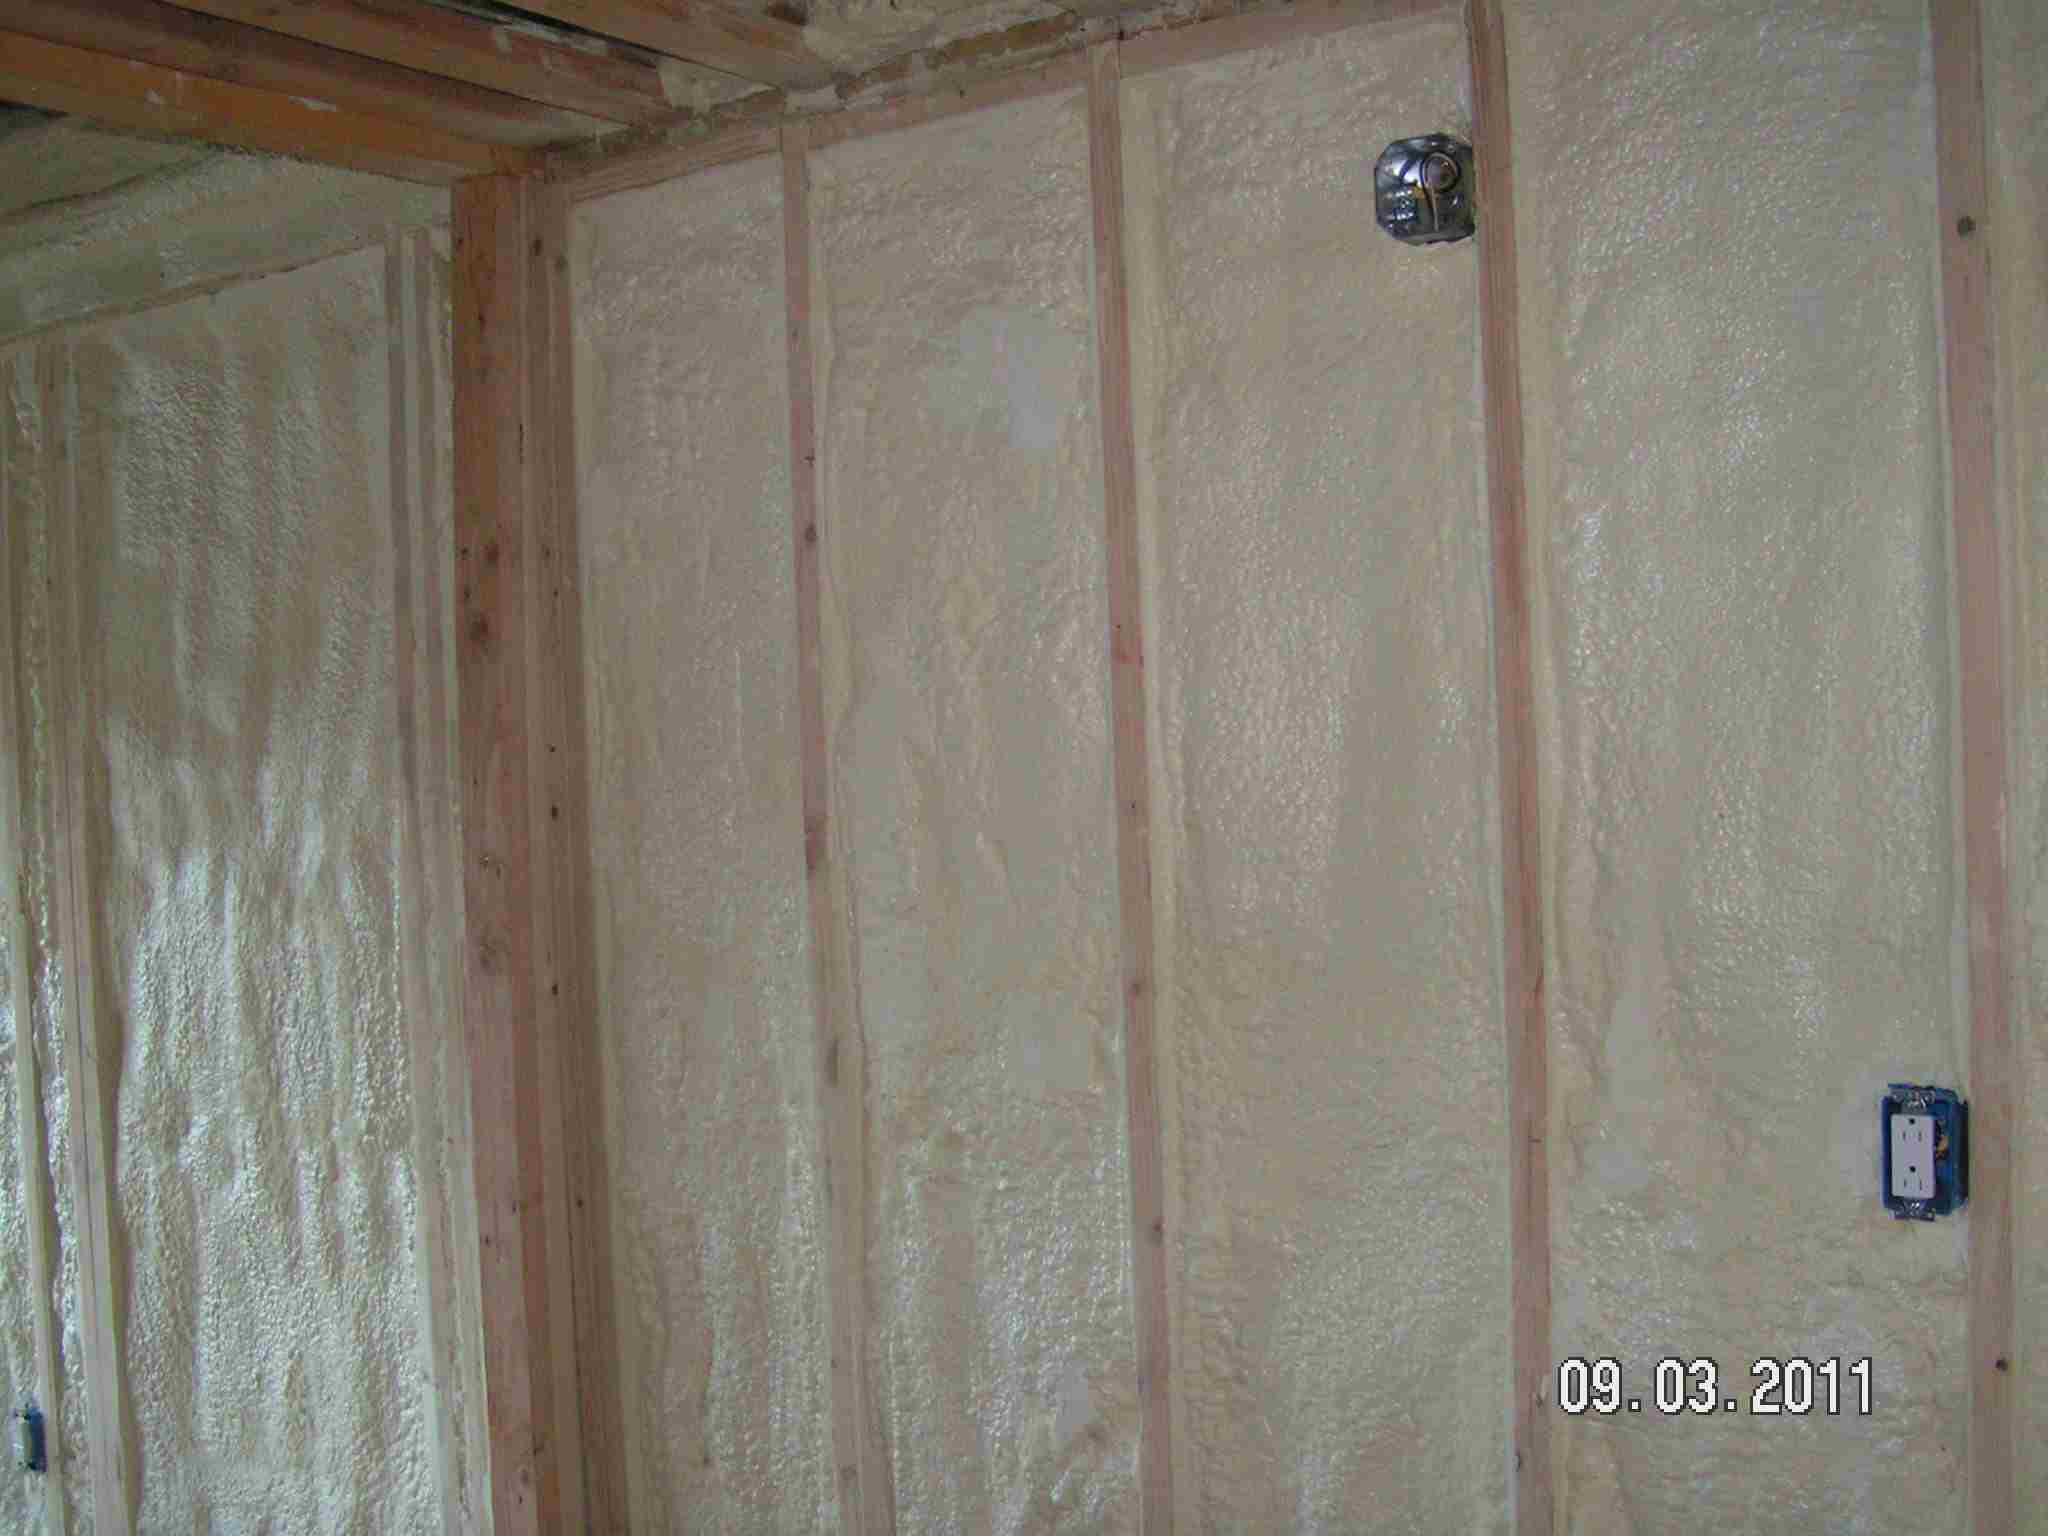 Closed Cell Foam Is The Only Type Of Insulation Clified As An Acceptable Flood Resistant Material By Fema Defined Any